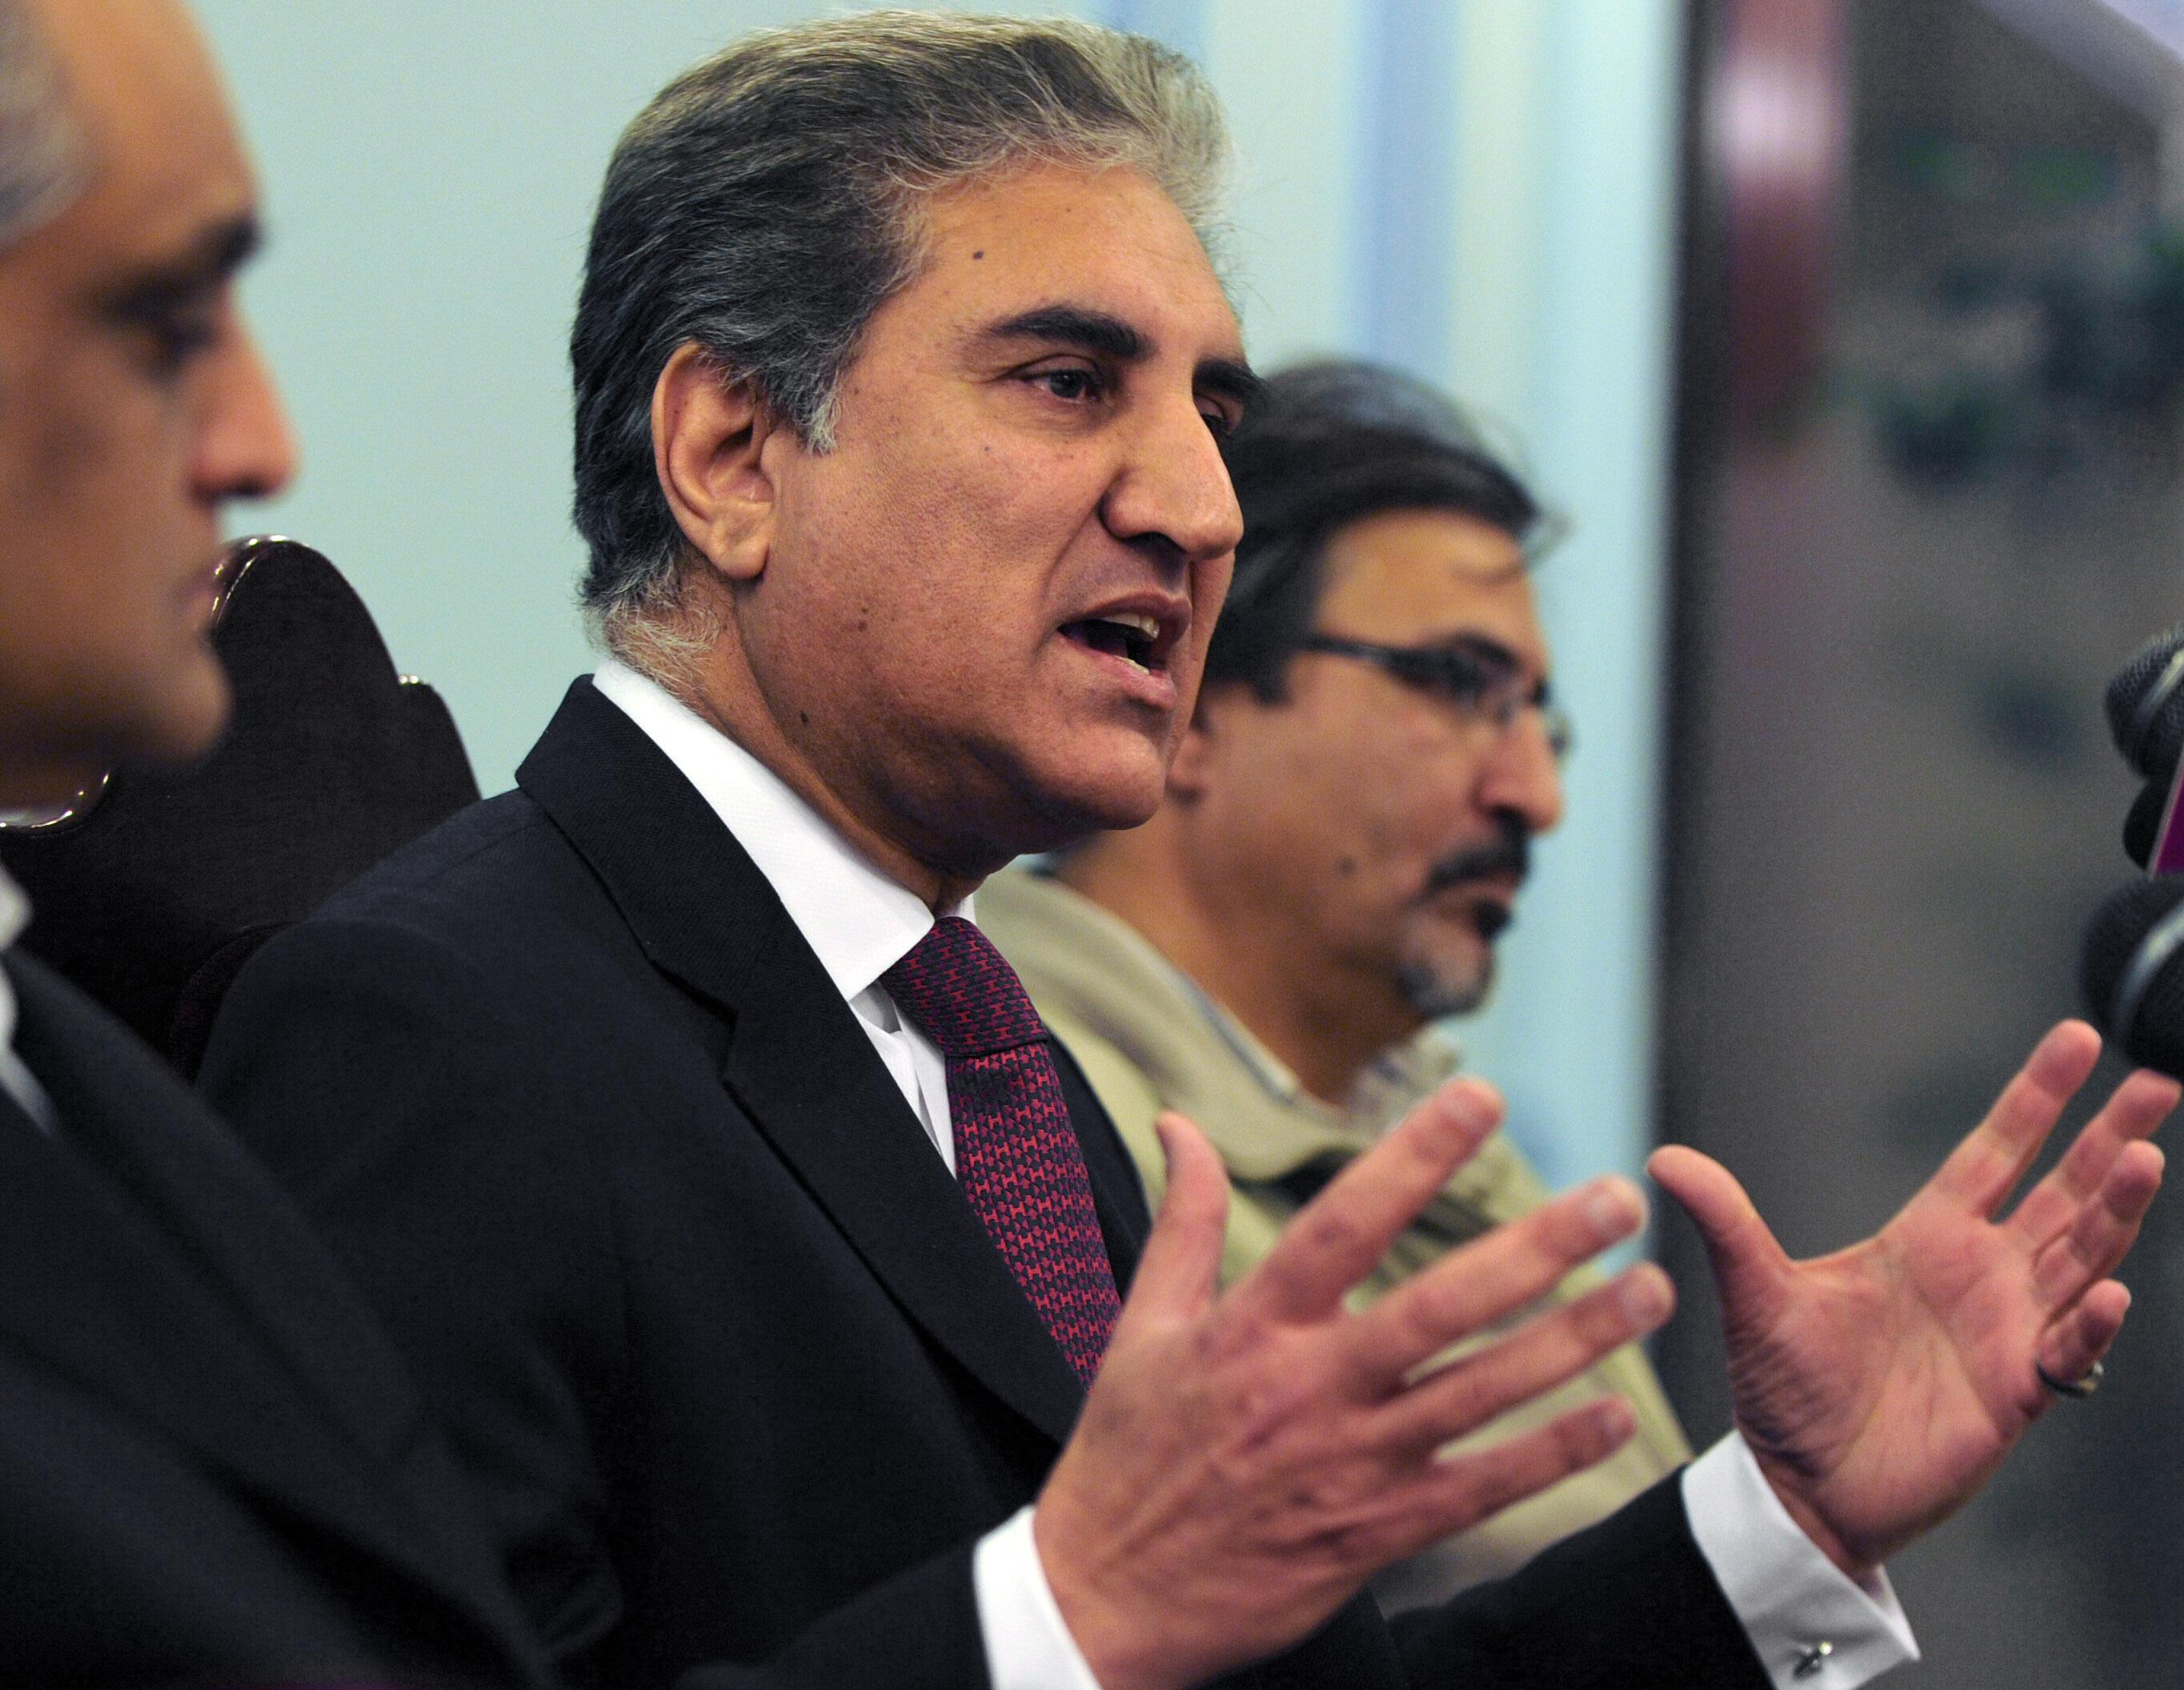 Foreign Minister Shah Mehmood Qureshi. PHOTO: AFP